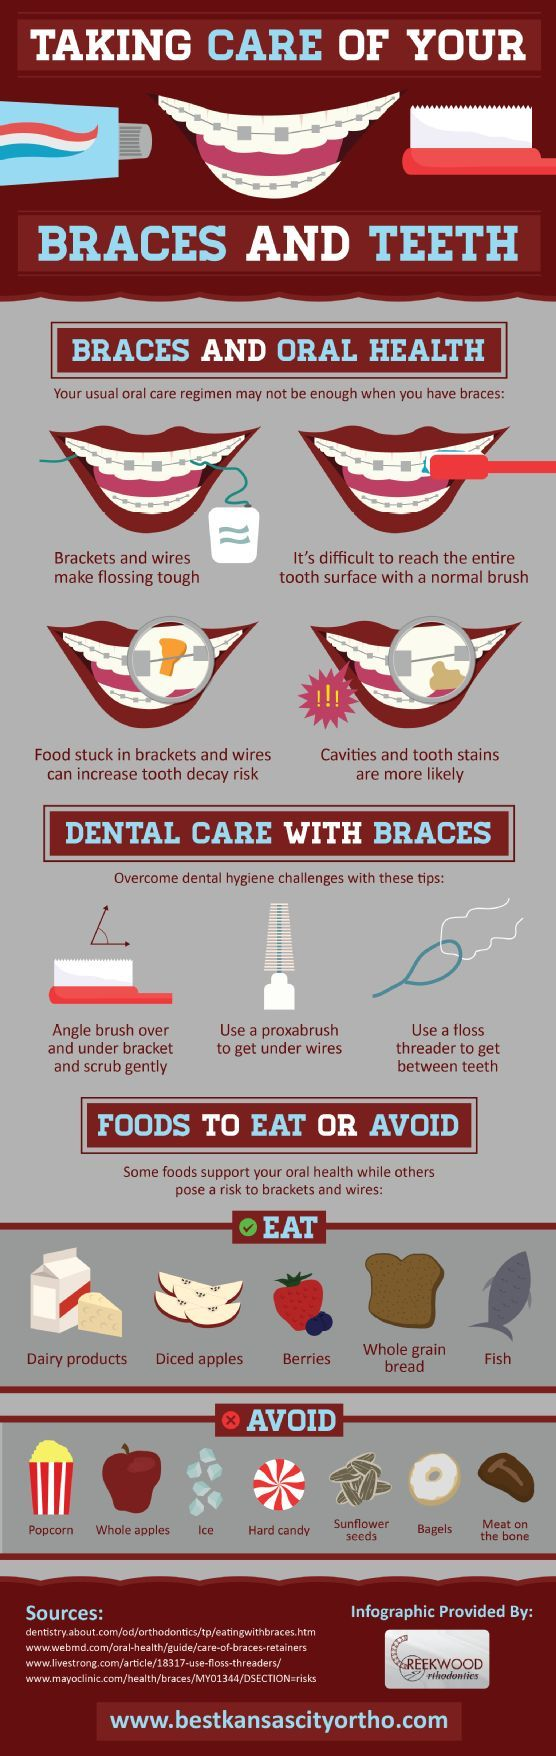 Make the most of your orthodontic treatment by learning what to eat and what to avoid. Some foods are too hard and may damage the wires or brackets.